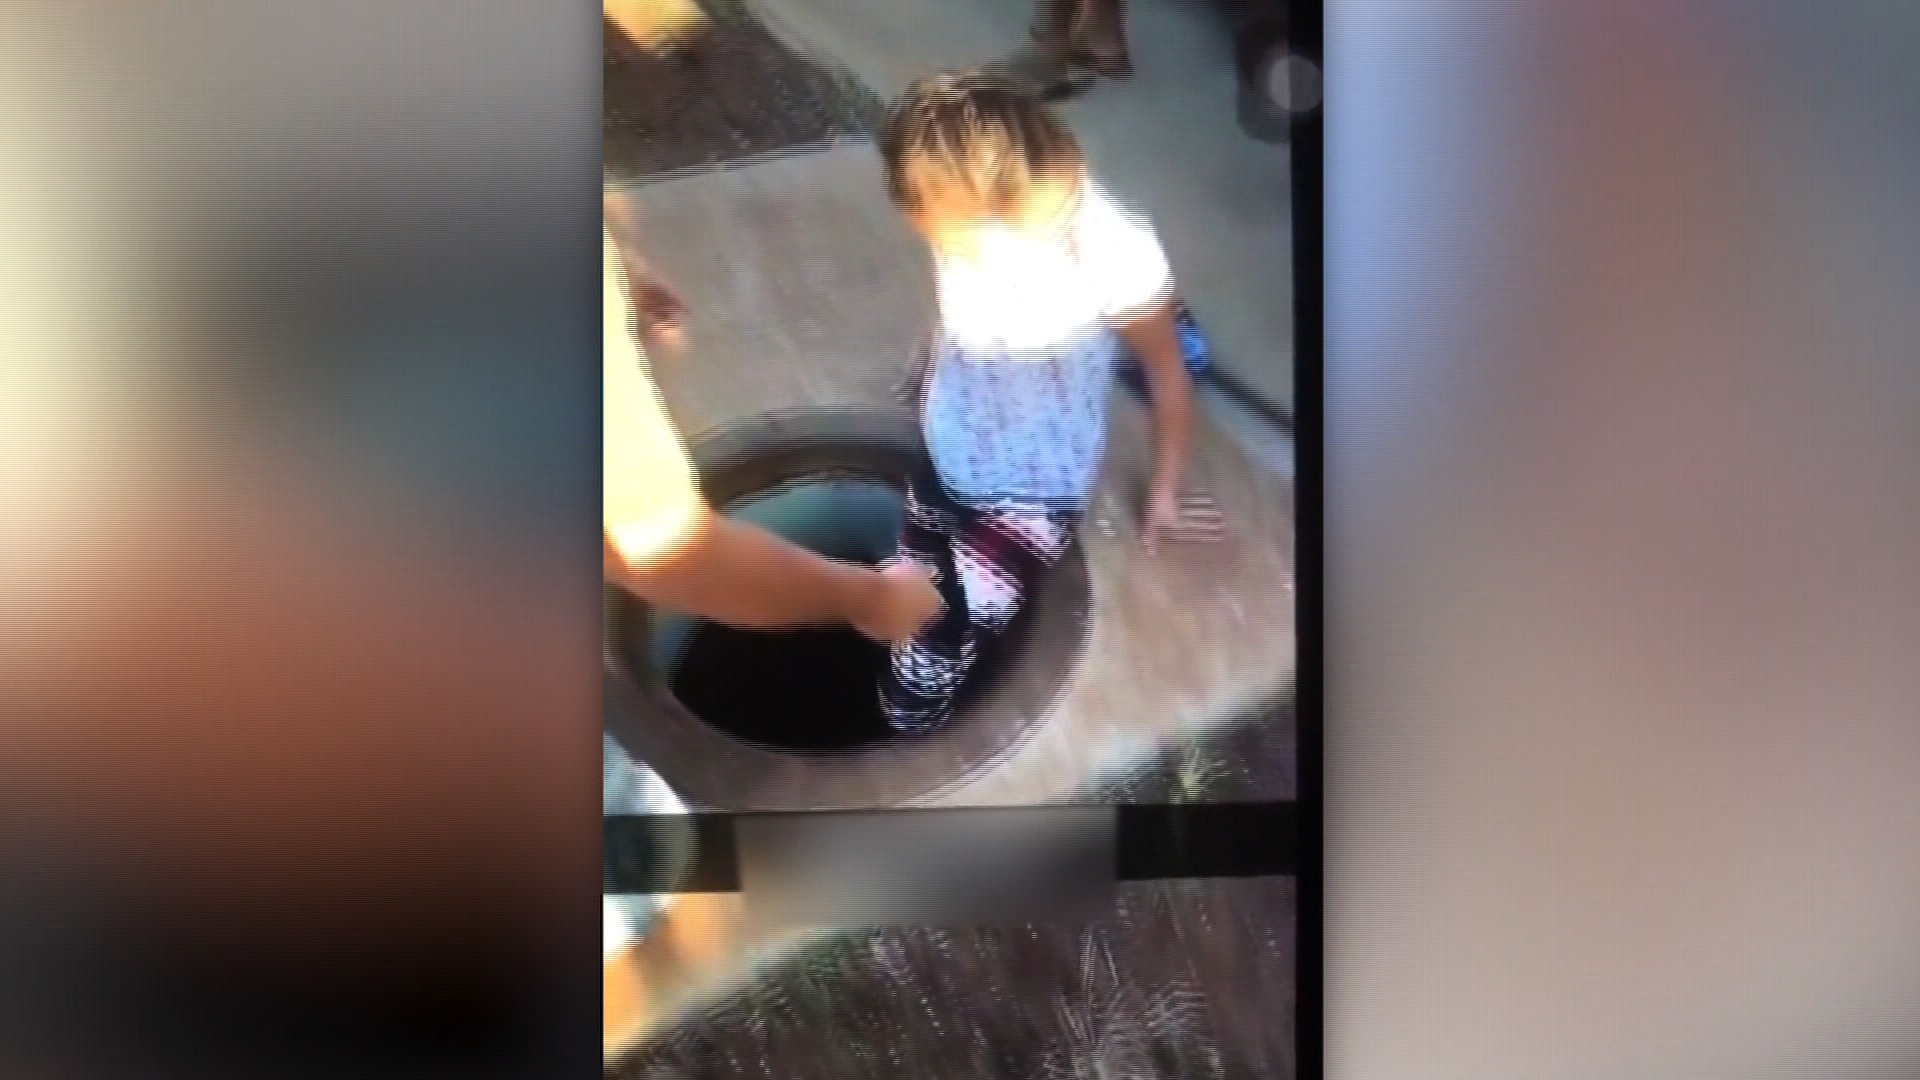 Man helps young girl into manhole in Hawaii